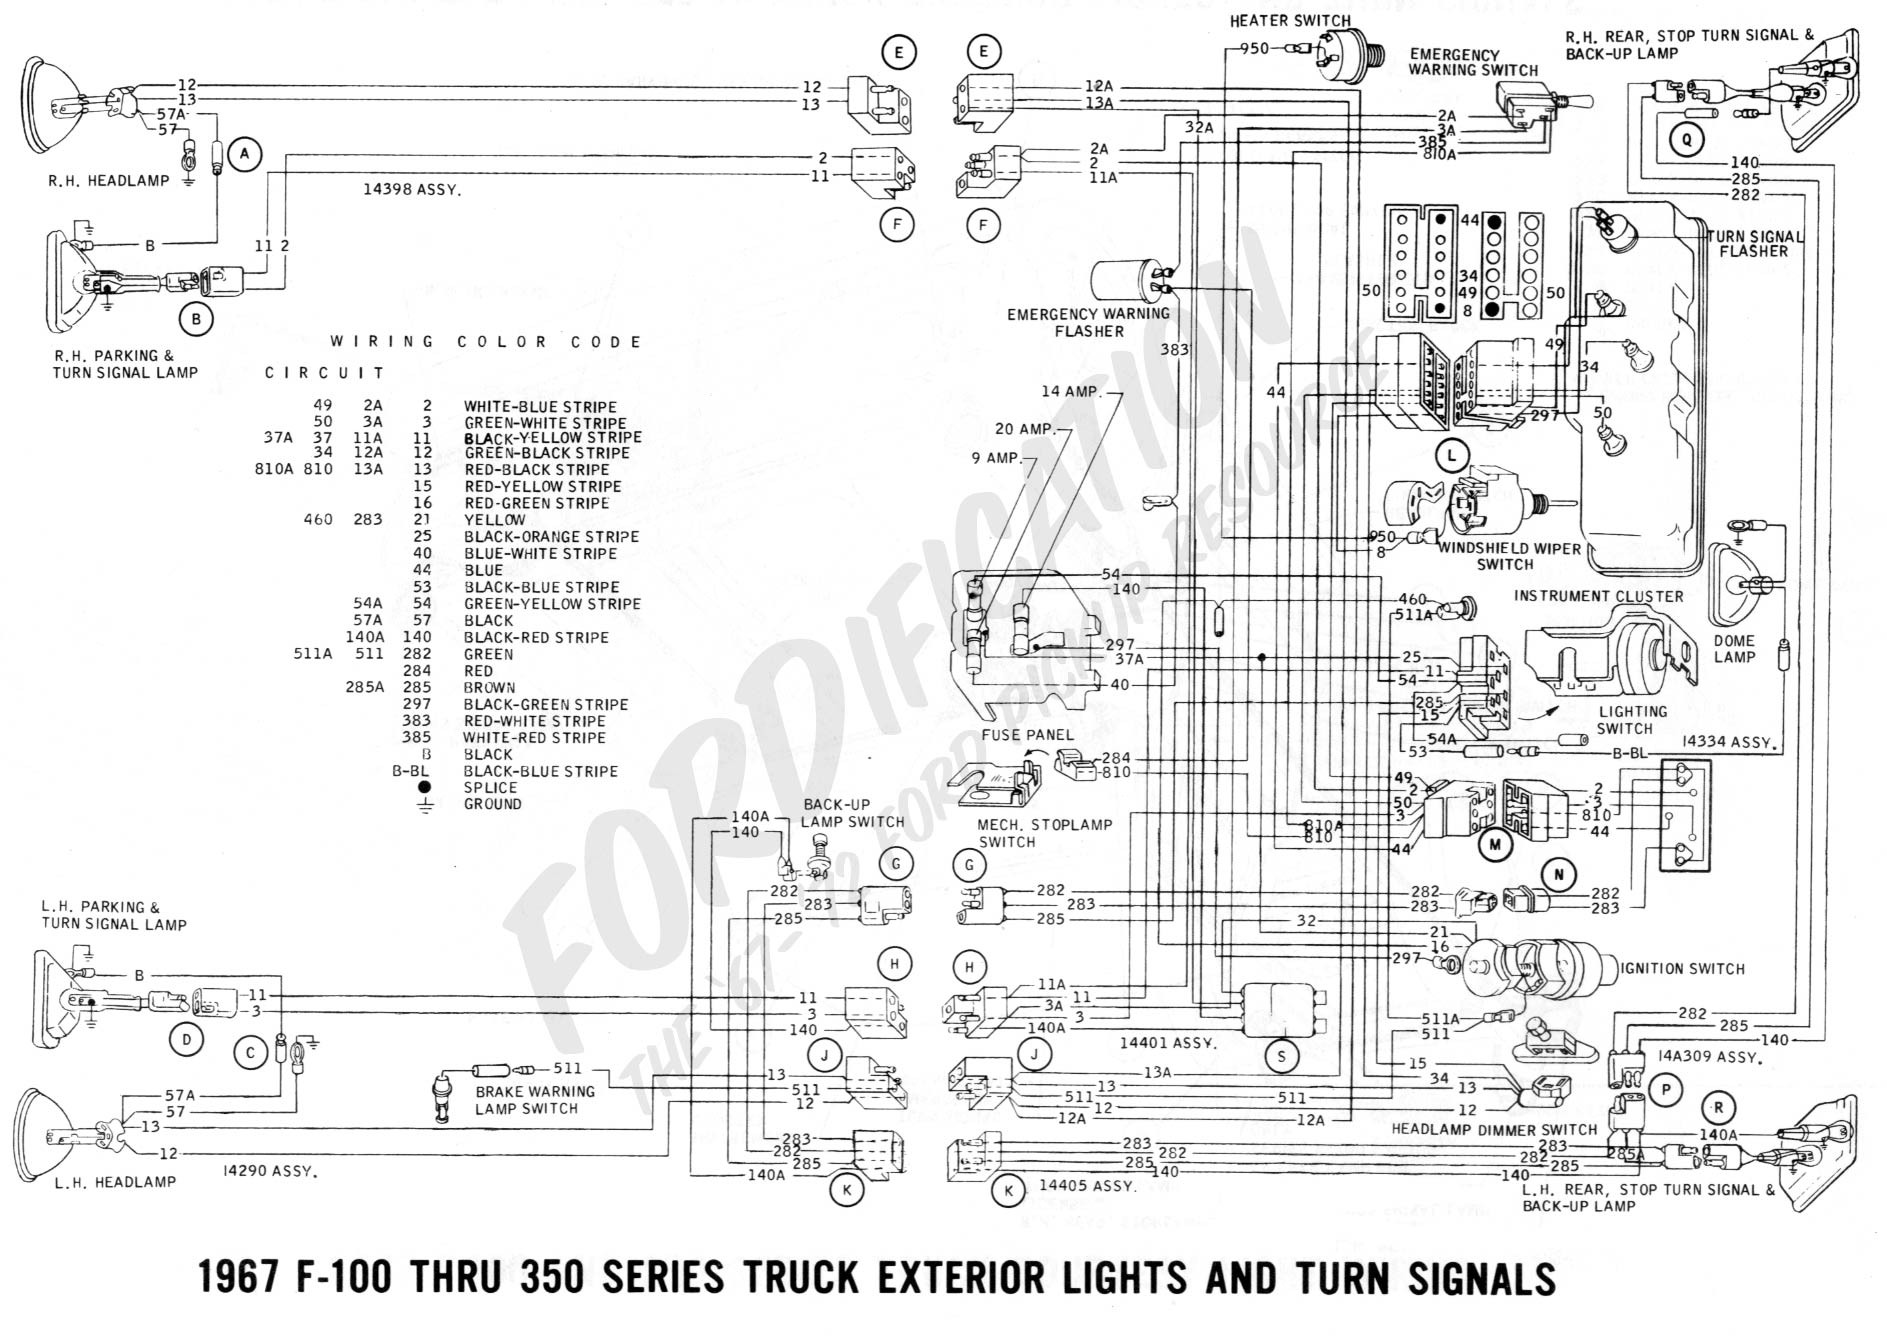 1960 Ford Falcon Wiring Harness | Wiring Diagram  Falcon Wiring Diagram on 1963 falcon speedometer, 1963 falcon exhaust, 1963 falcon brakes, 1963 falcon wheels, 1963 falcon transmission, 1963 falcon battery, 1963 falcon frame, 1963 falcon steering, 1963 falcon ignition coil, 1963 falcon seats, 1963 falcon cylinder head, 1963 falcon suspension, 1963 falcon radio, 1963 falcon distributor, 1963 falcon fuel pump, 1963 falcon brochure, 1963 falcon ford, 1963 falcon specifications, 1963 falcon engine, 1963 falcon radiator,